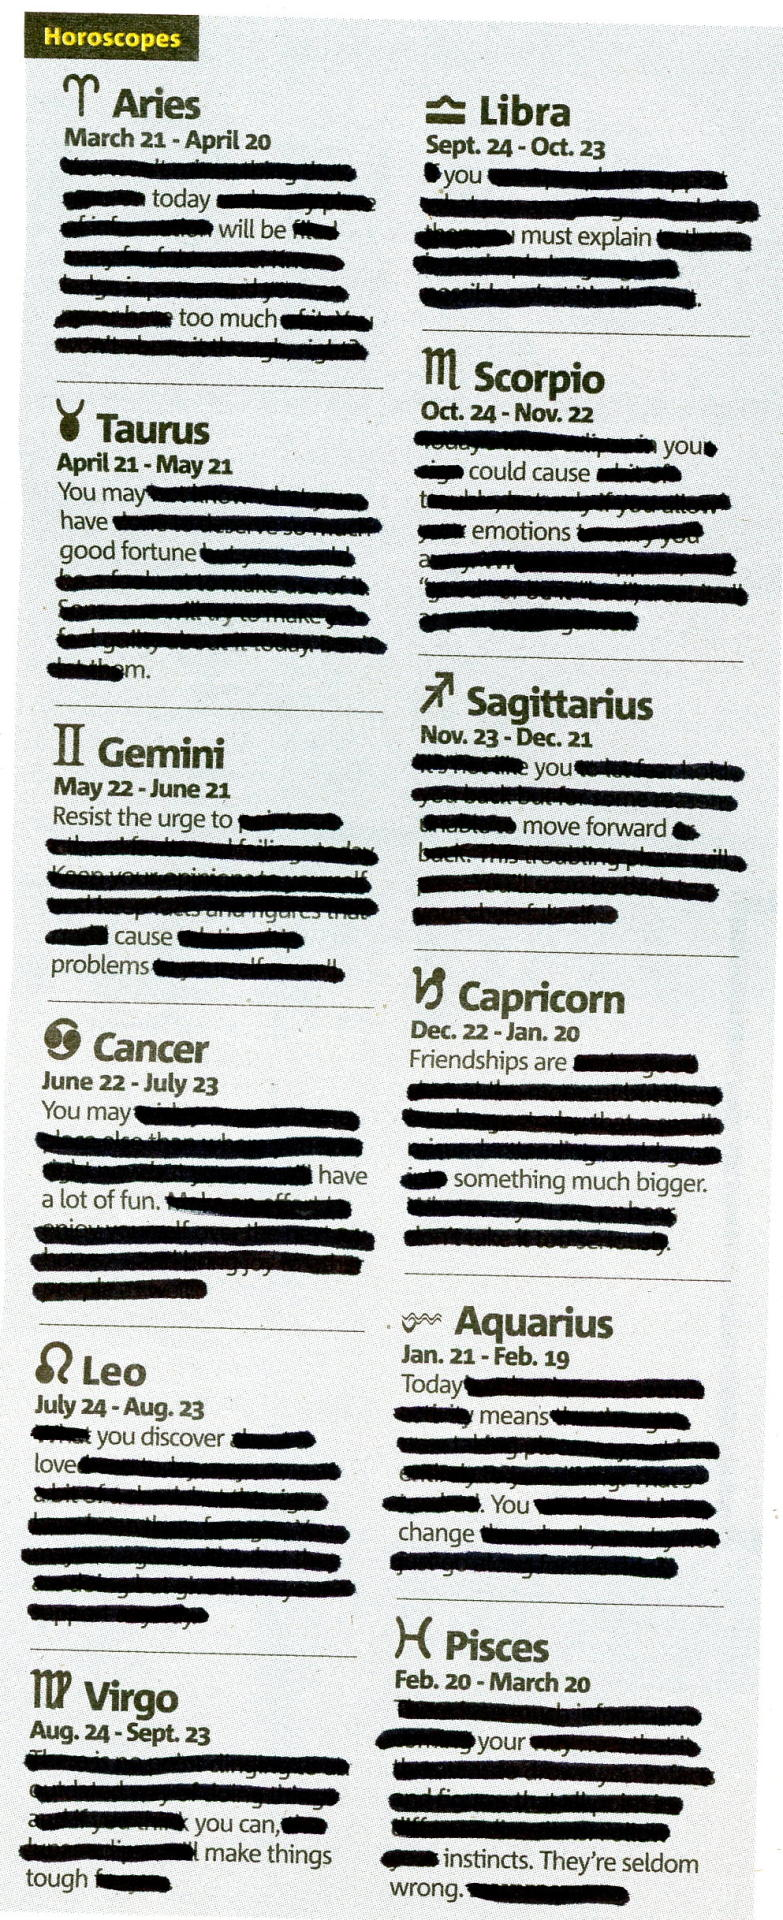 HOROSCOPE - APRIL 25, 2013